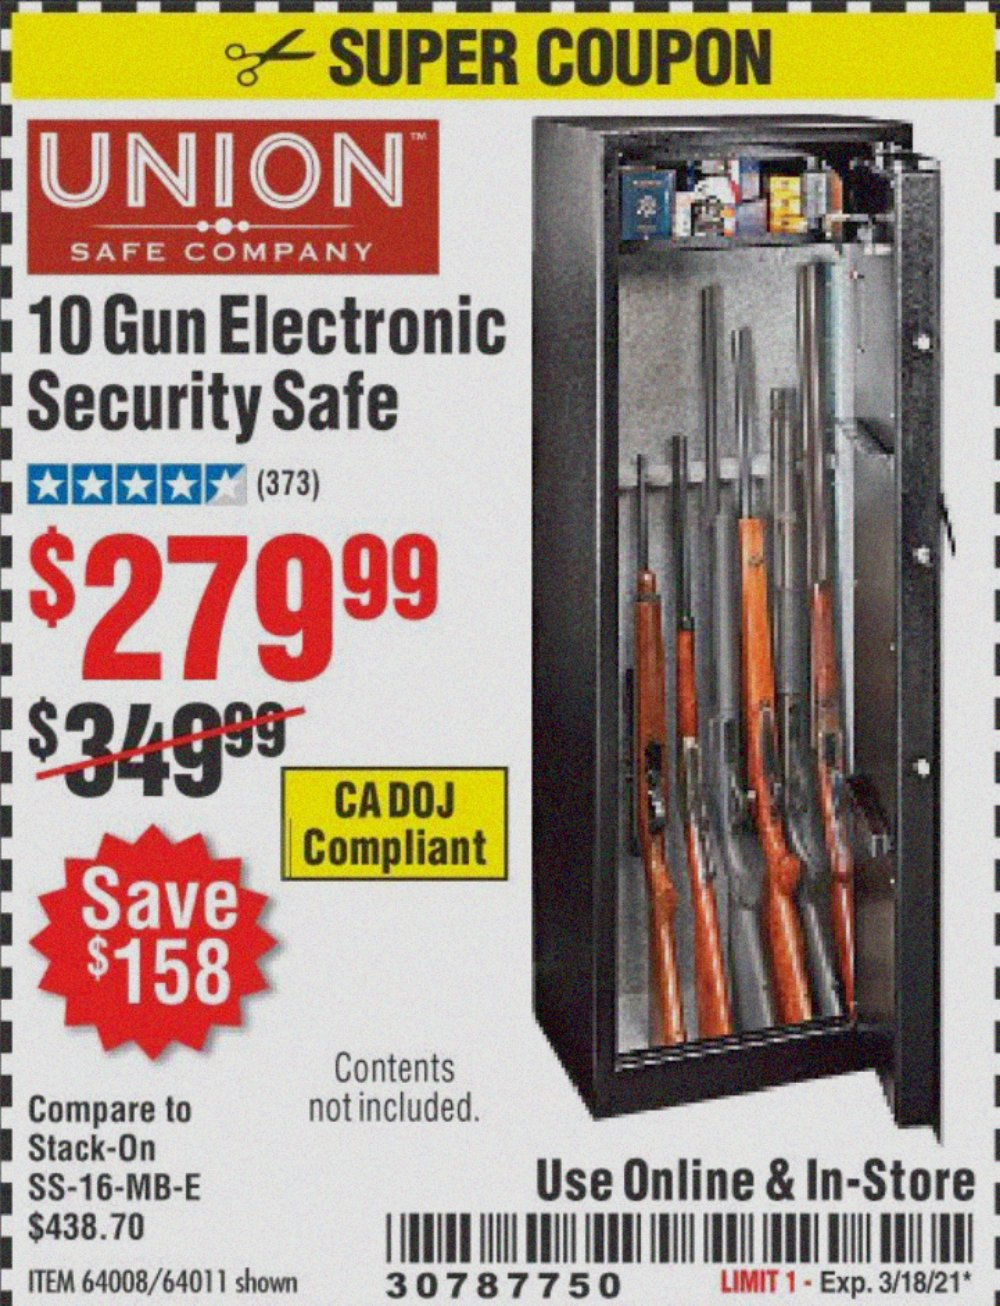 Harbor Freight Coupon, HF Coupons - 10 Gun Electronic Security Safe